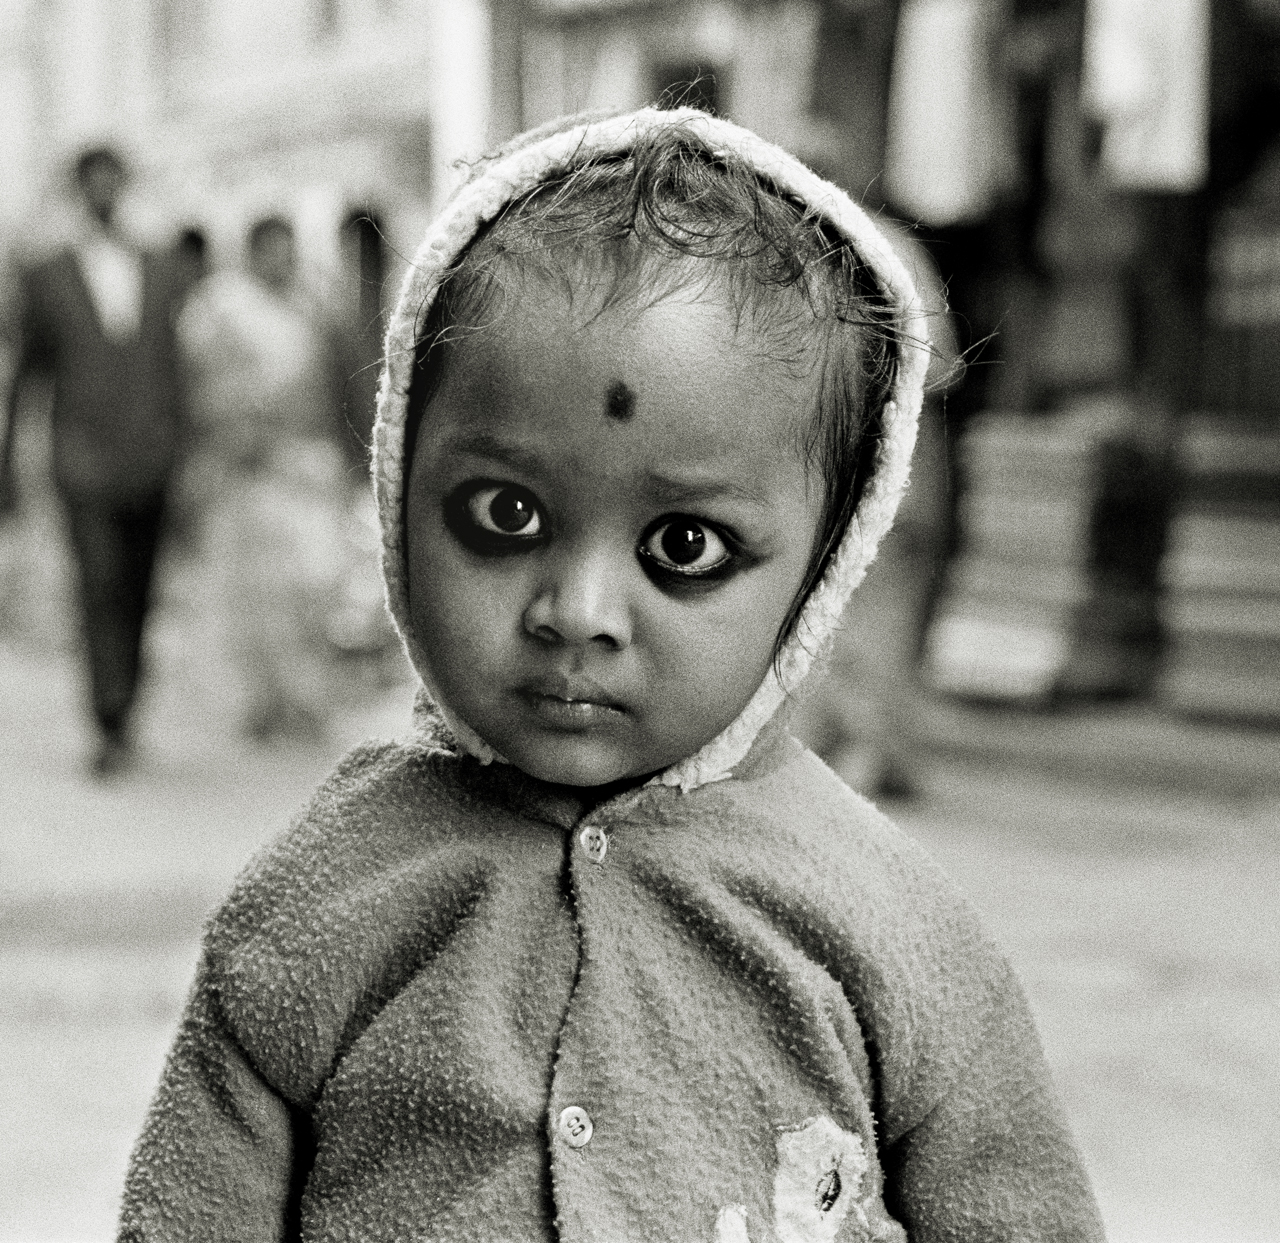 Child with Charcoal Eyes, Kathmandu, Nepal 1997